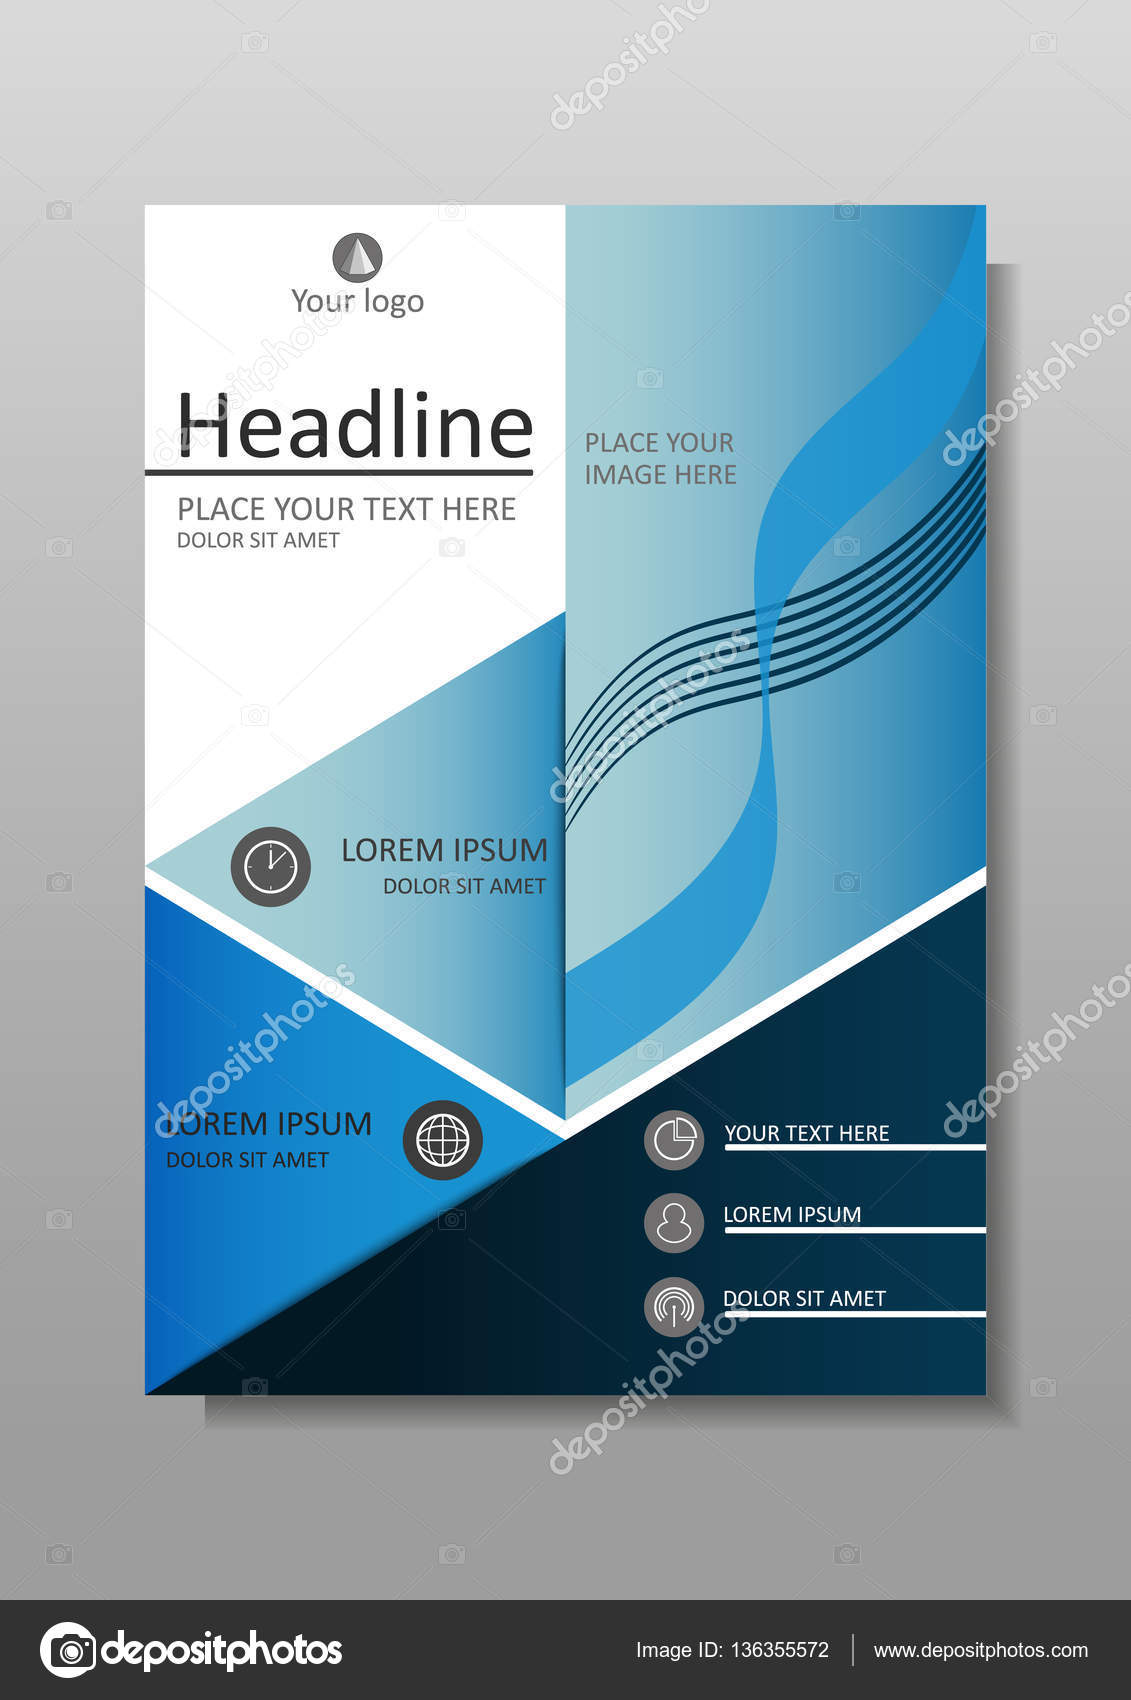 Business Deposit Book Cover : Academic book cover design journals conferences